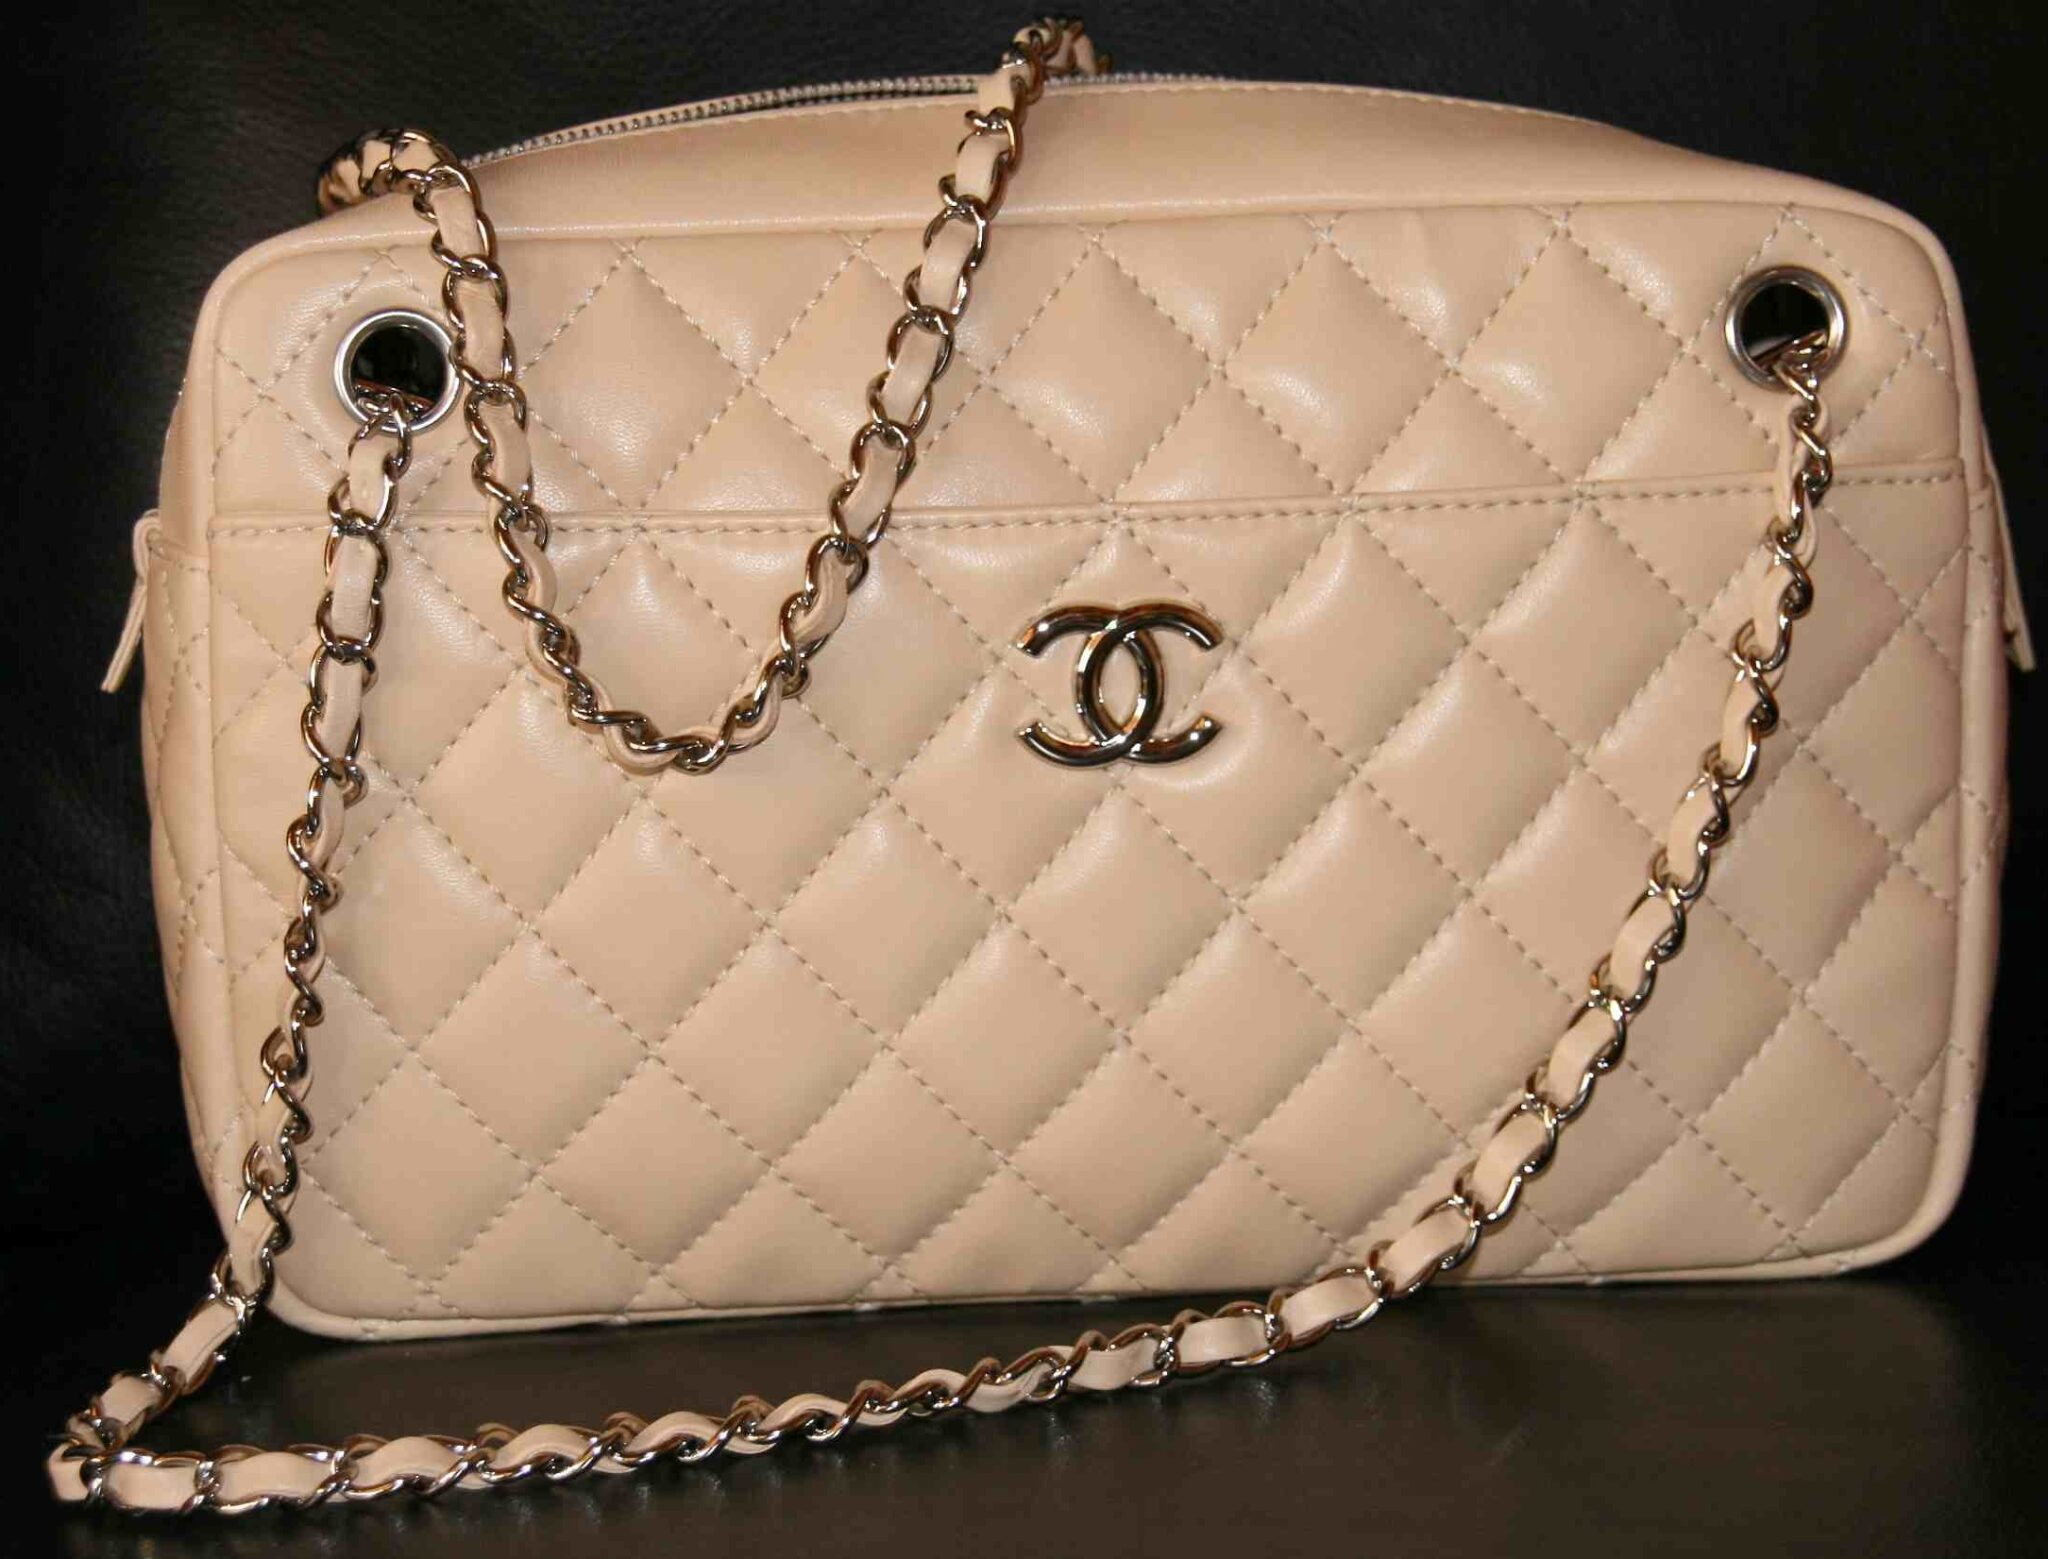 Chanel Light Beige Camera Case Medium Bag 2009